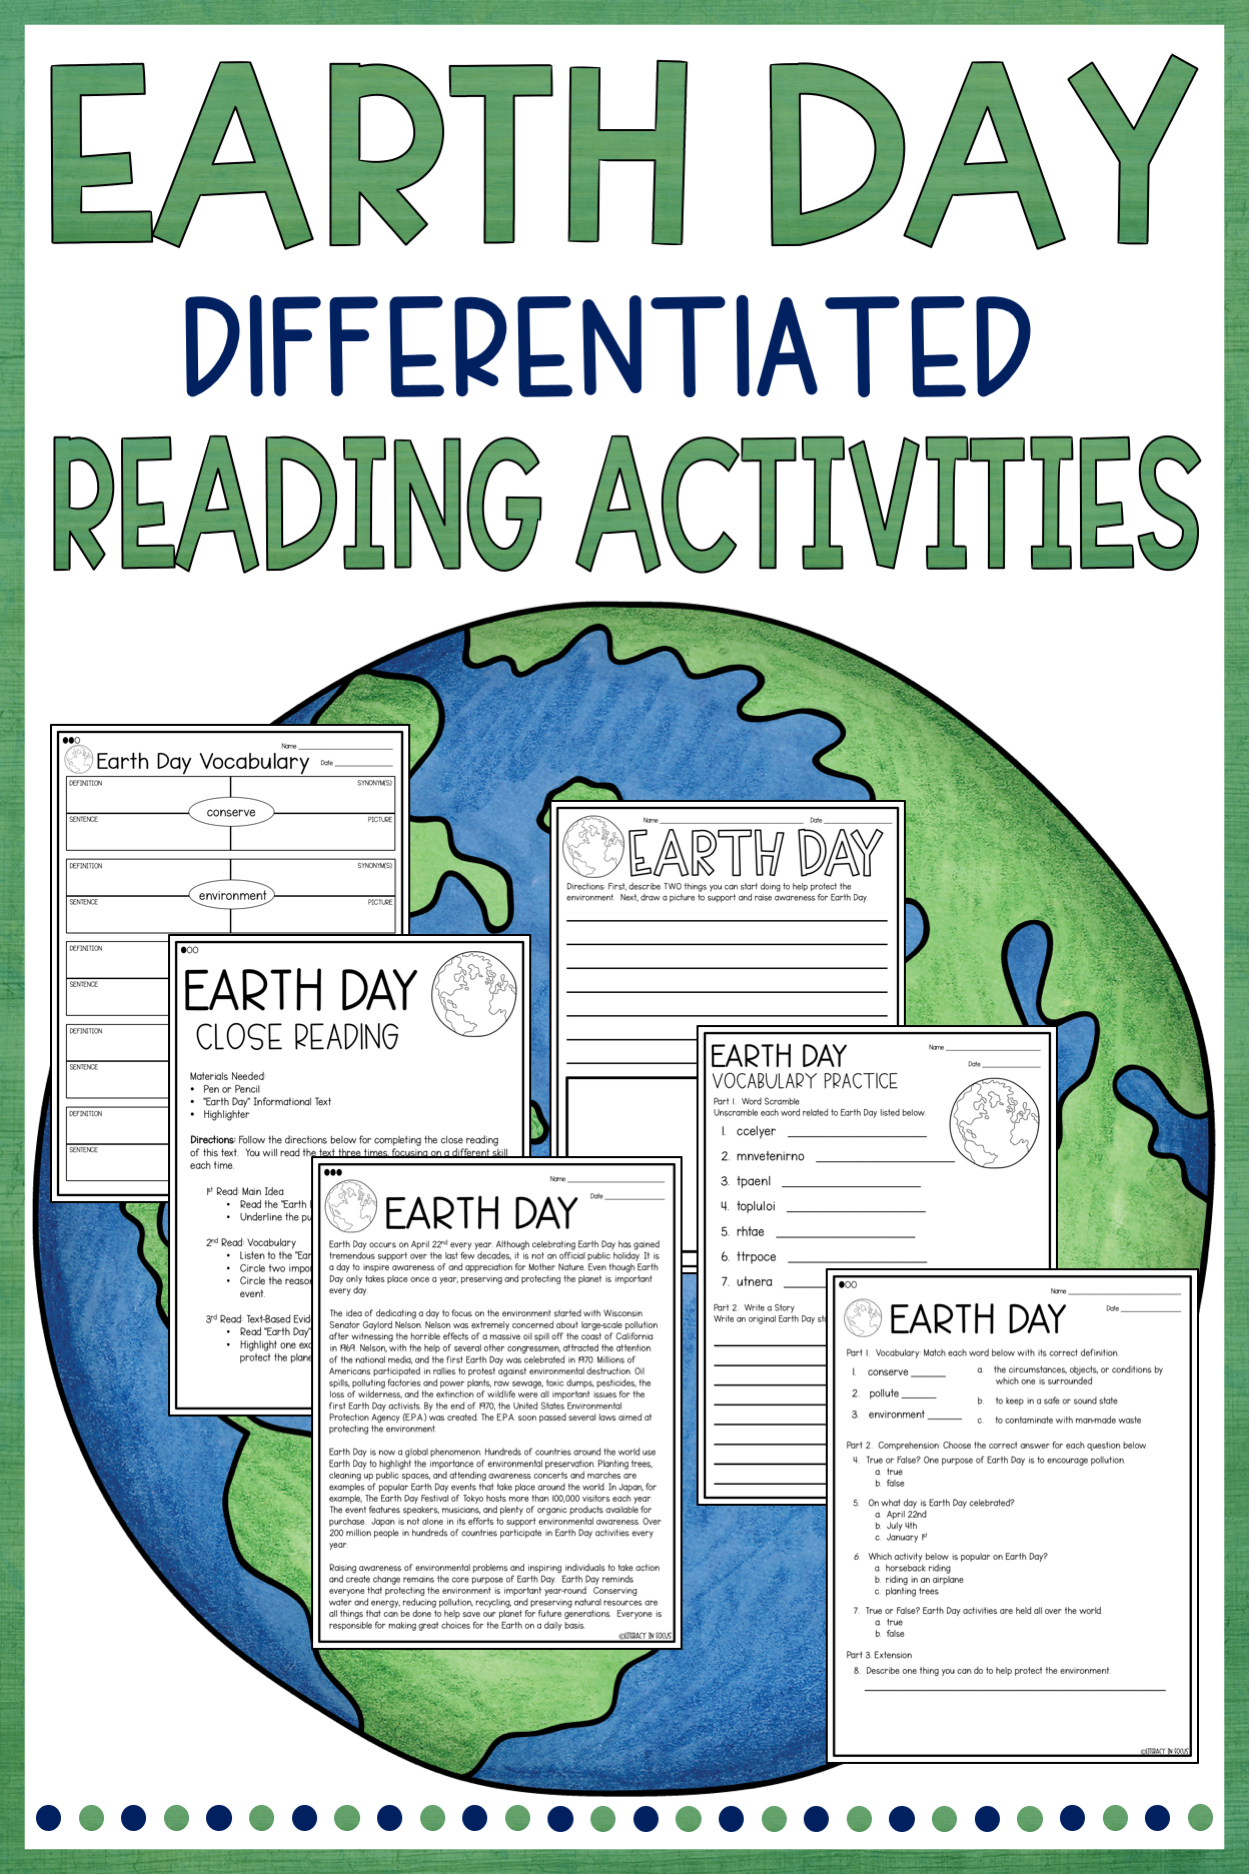 Earth Day Worksheet Middle School   Printable Worksheets and Activities for  Teachers [ 1874 x 1249 Pixel ]